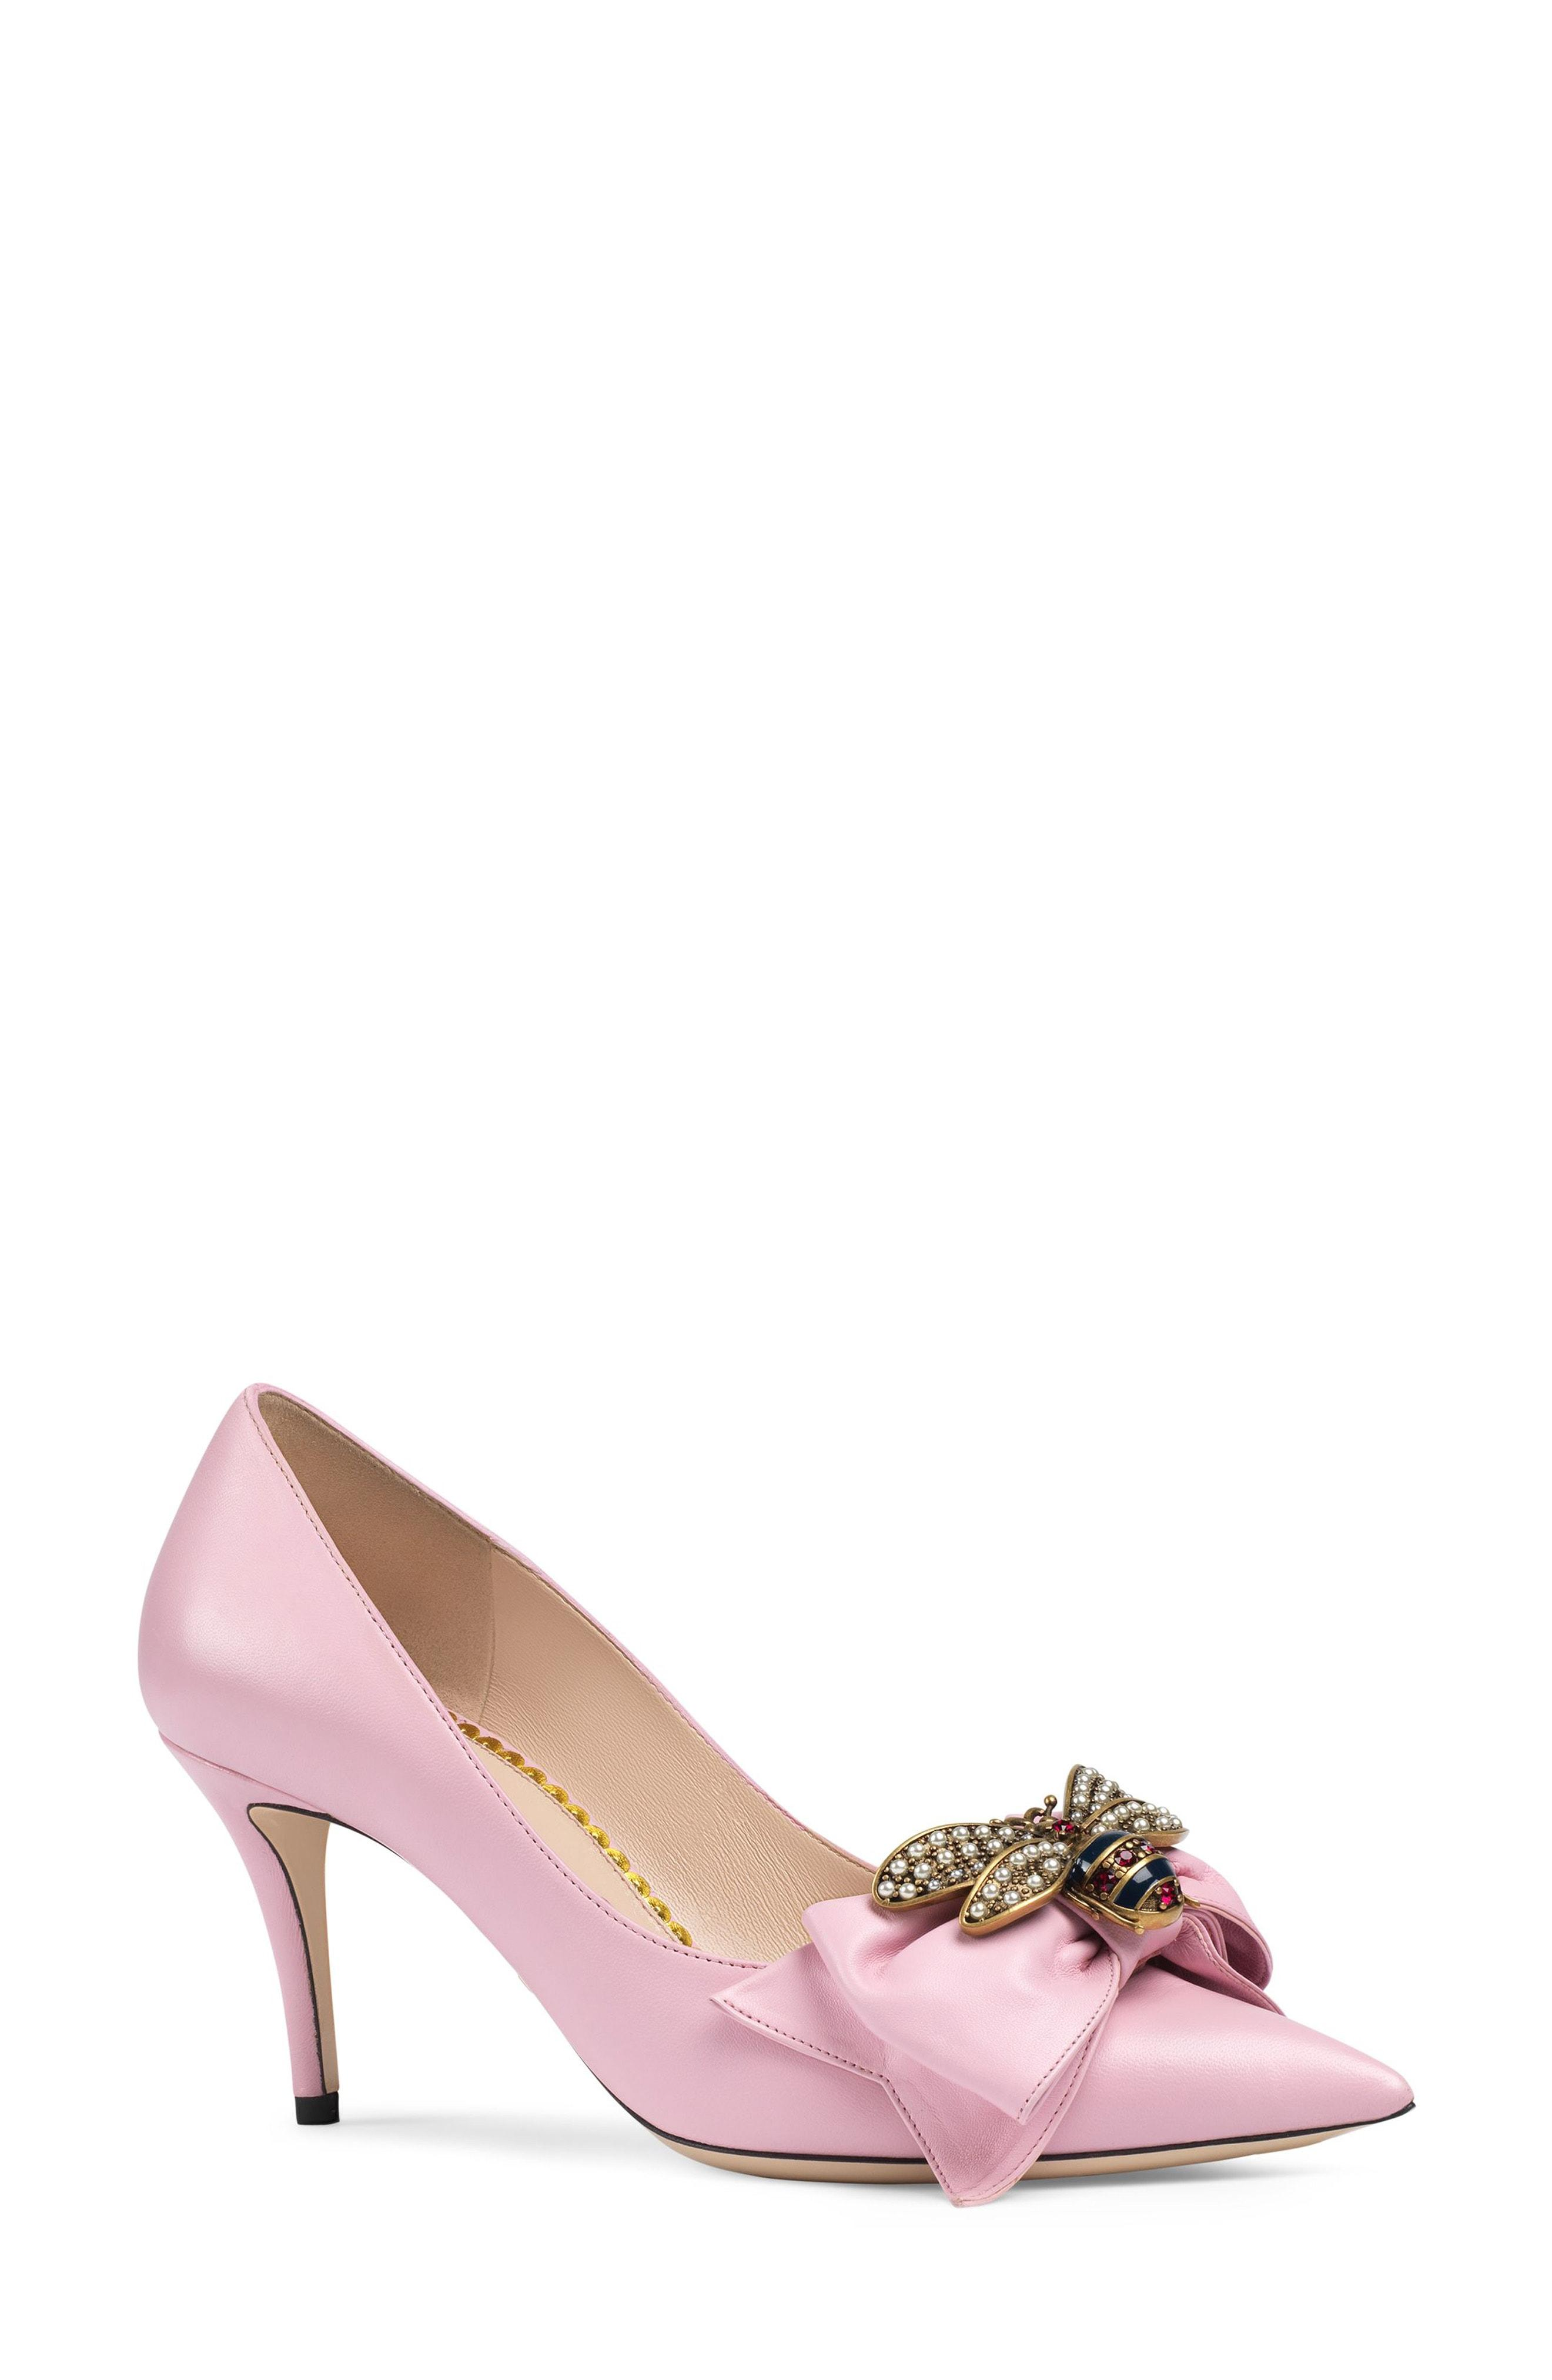 d70855c51c90 Gucci Women s Queen Margaret Embellished Leather Pumps In Baby Pink ...